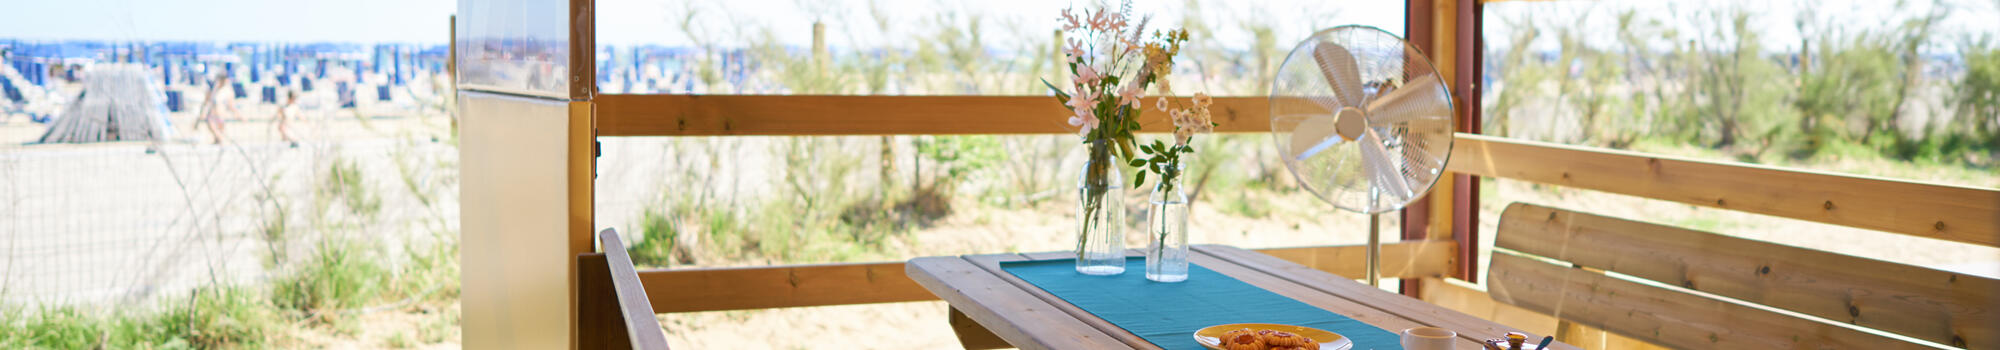 April and May glamping holidays in Bibione